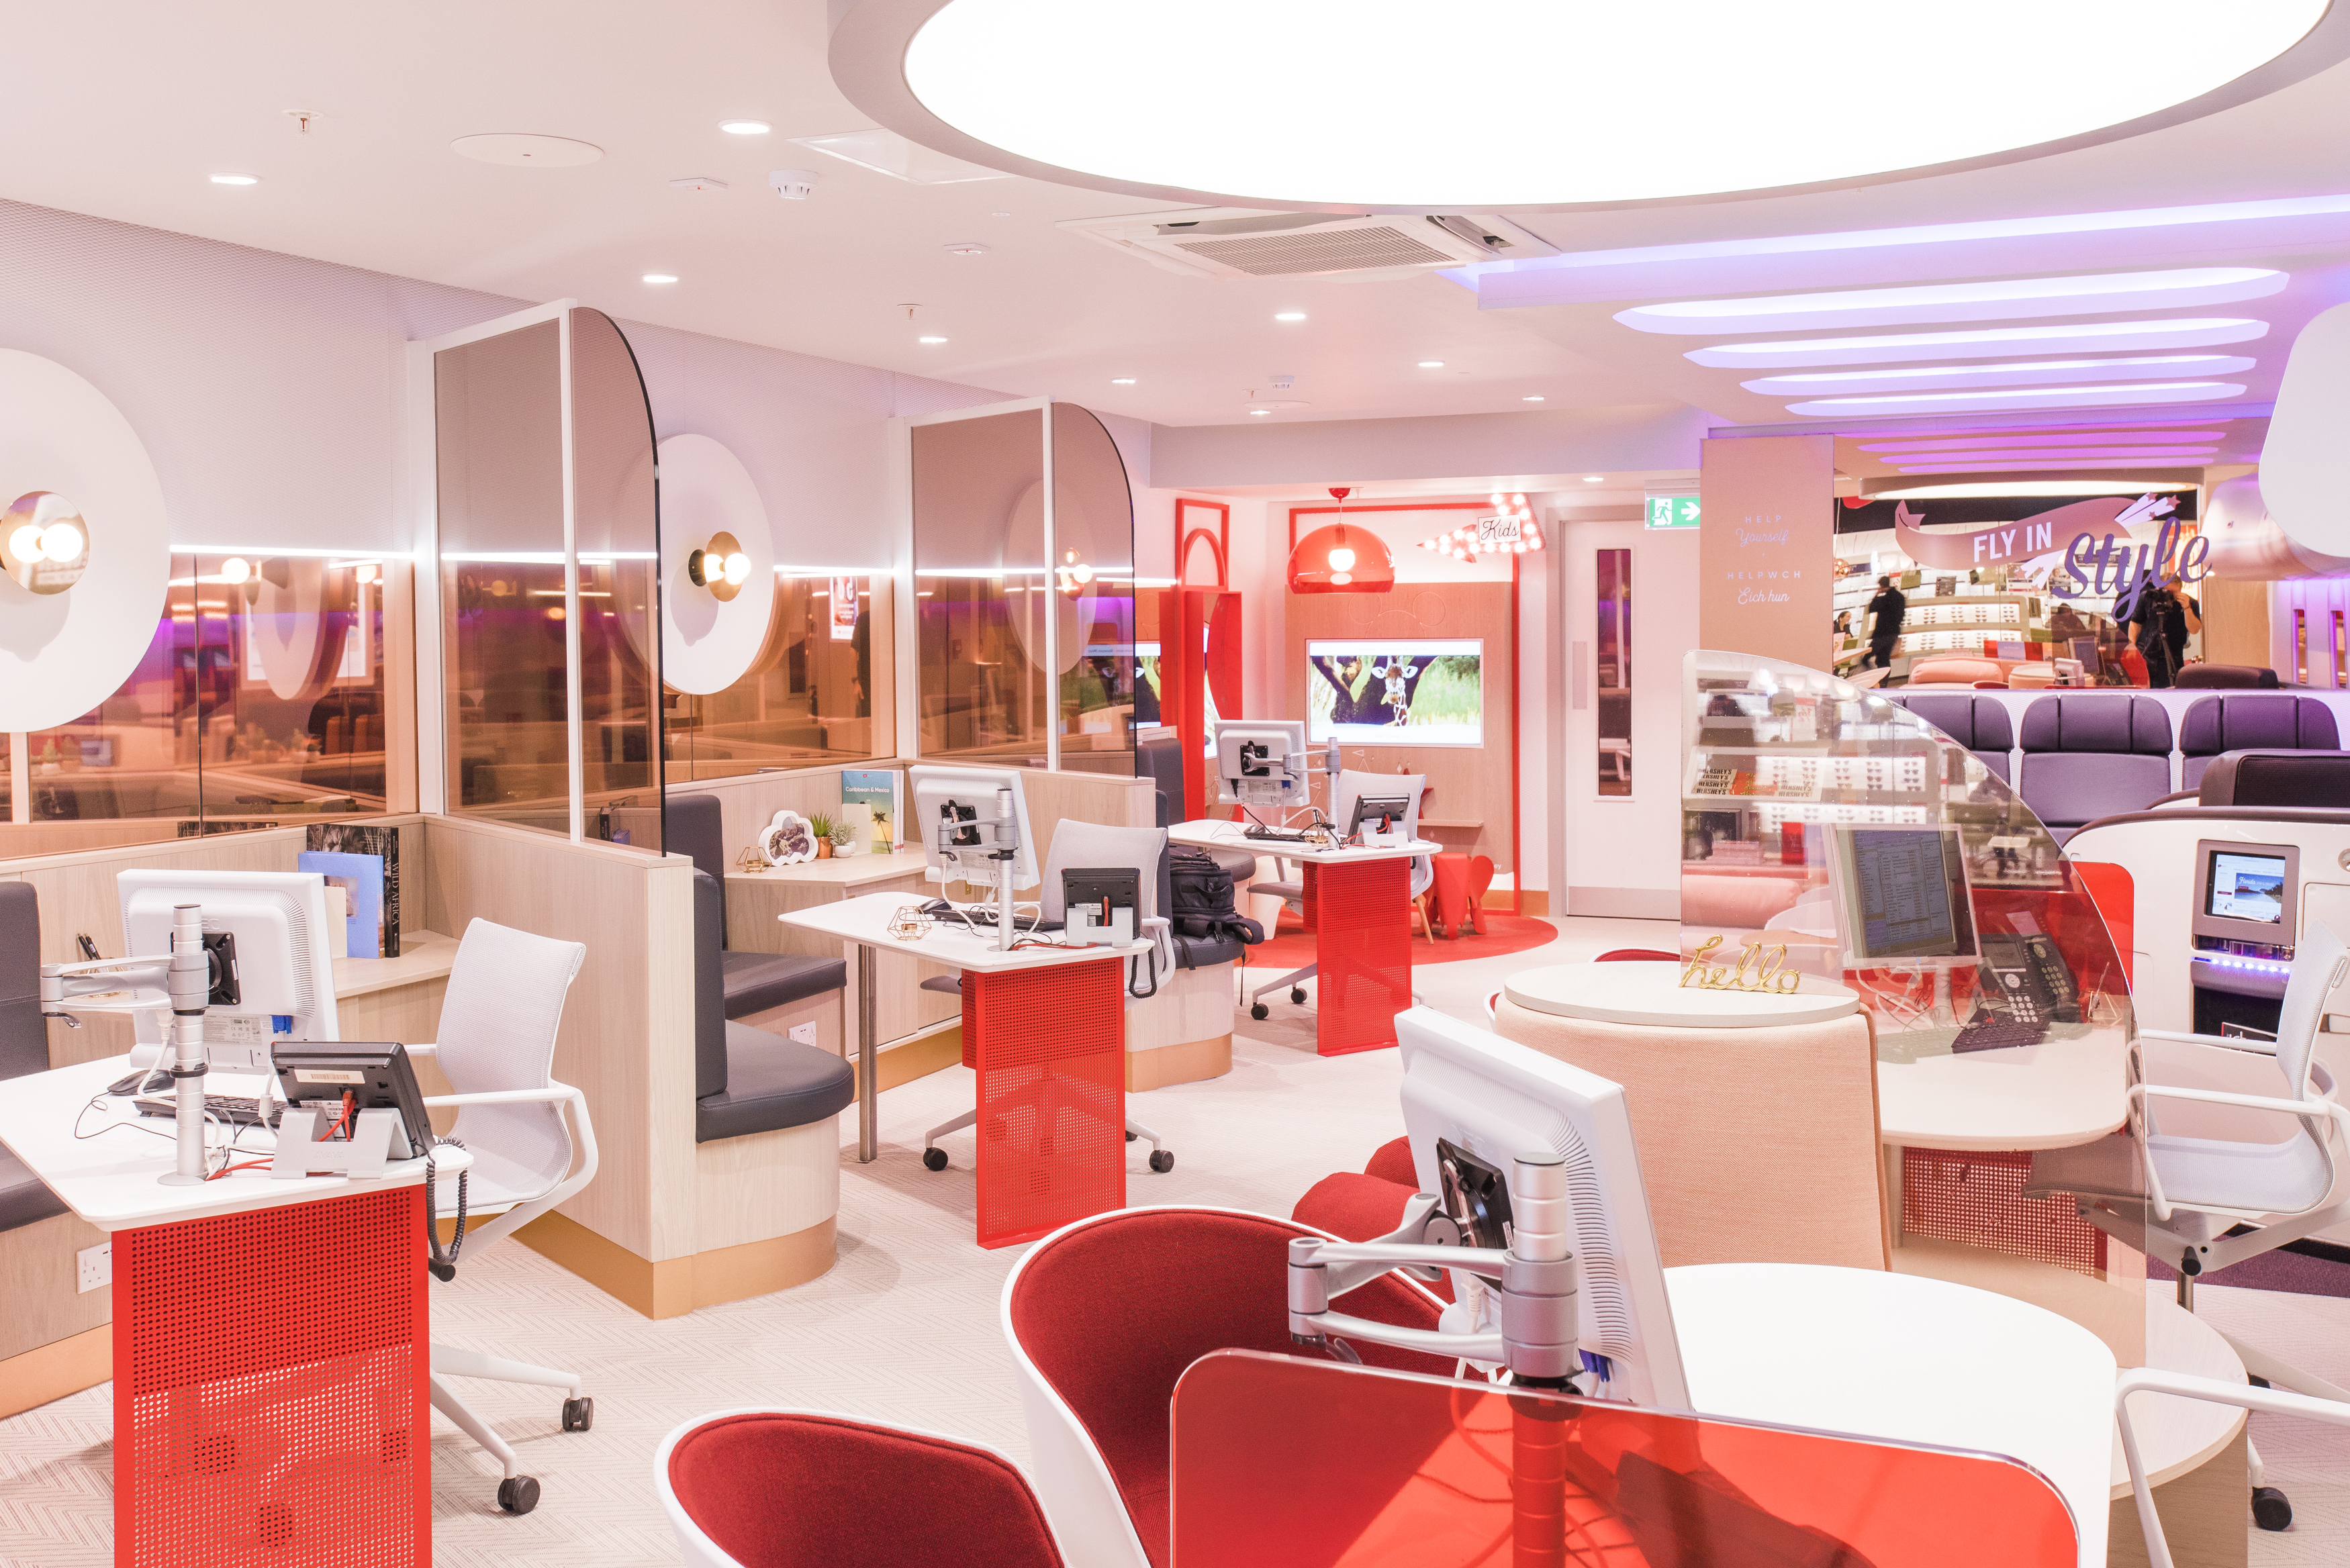 Virgin Holidays Cardiff Retail Interior